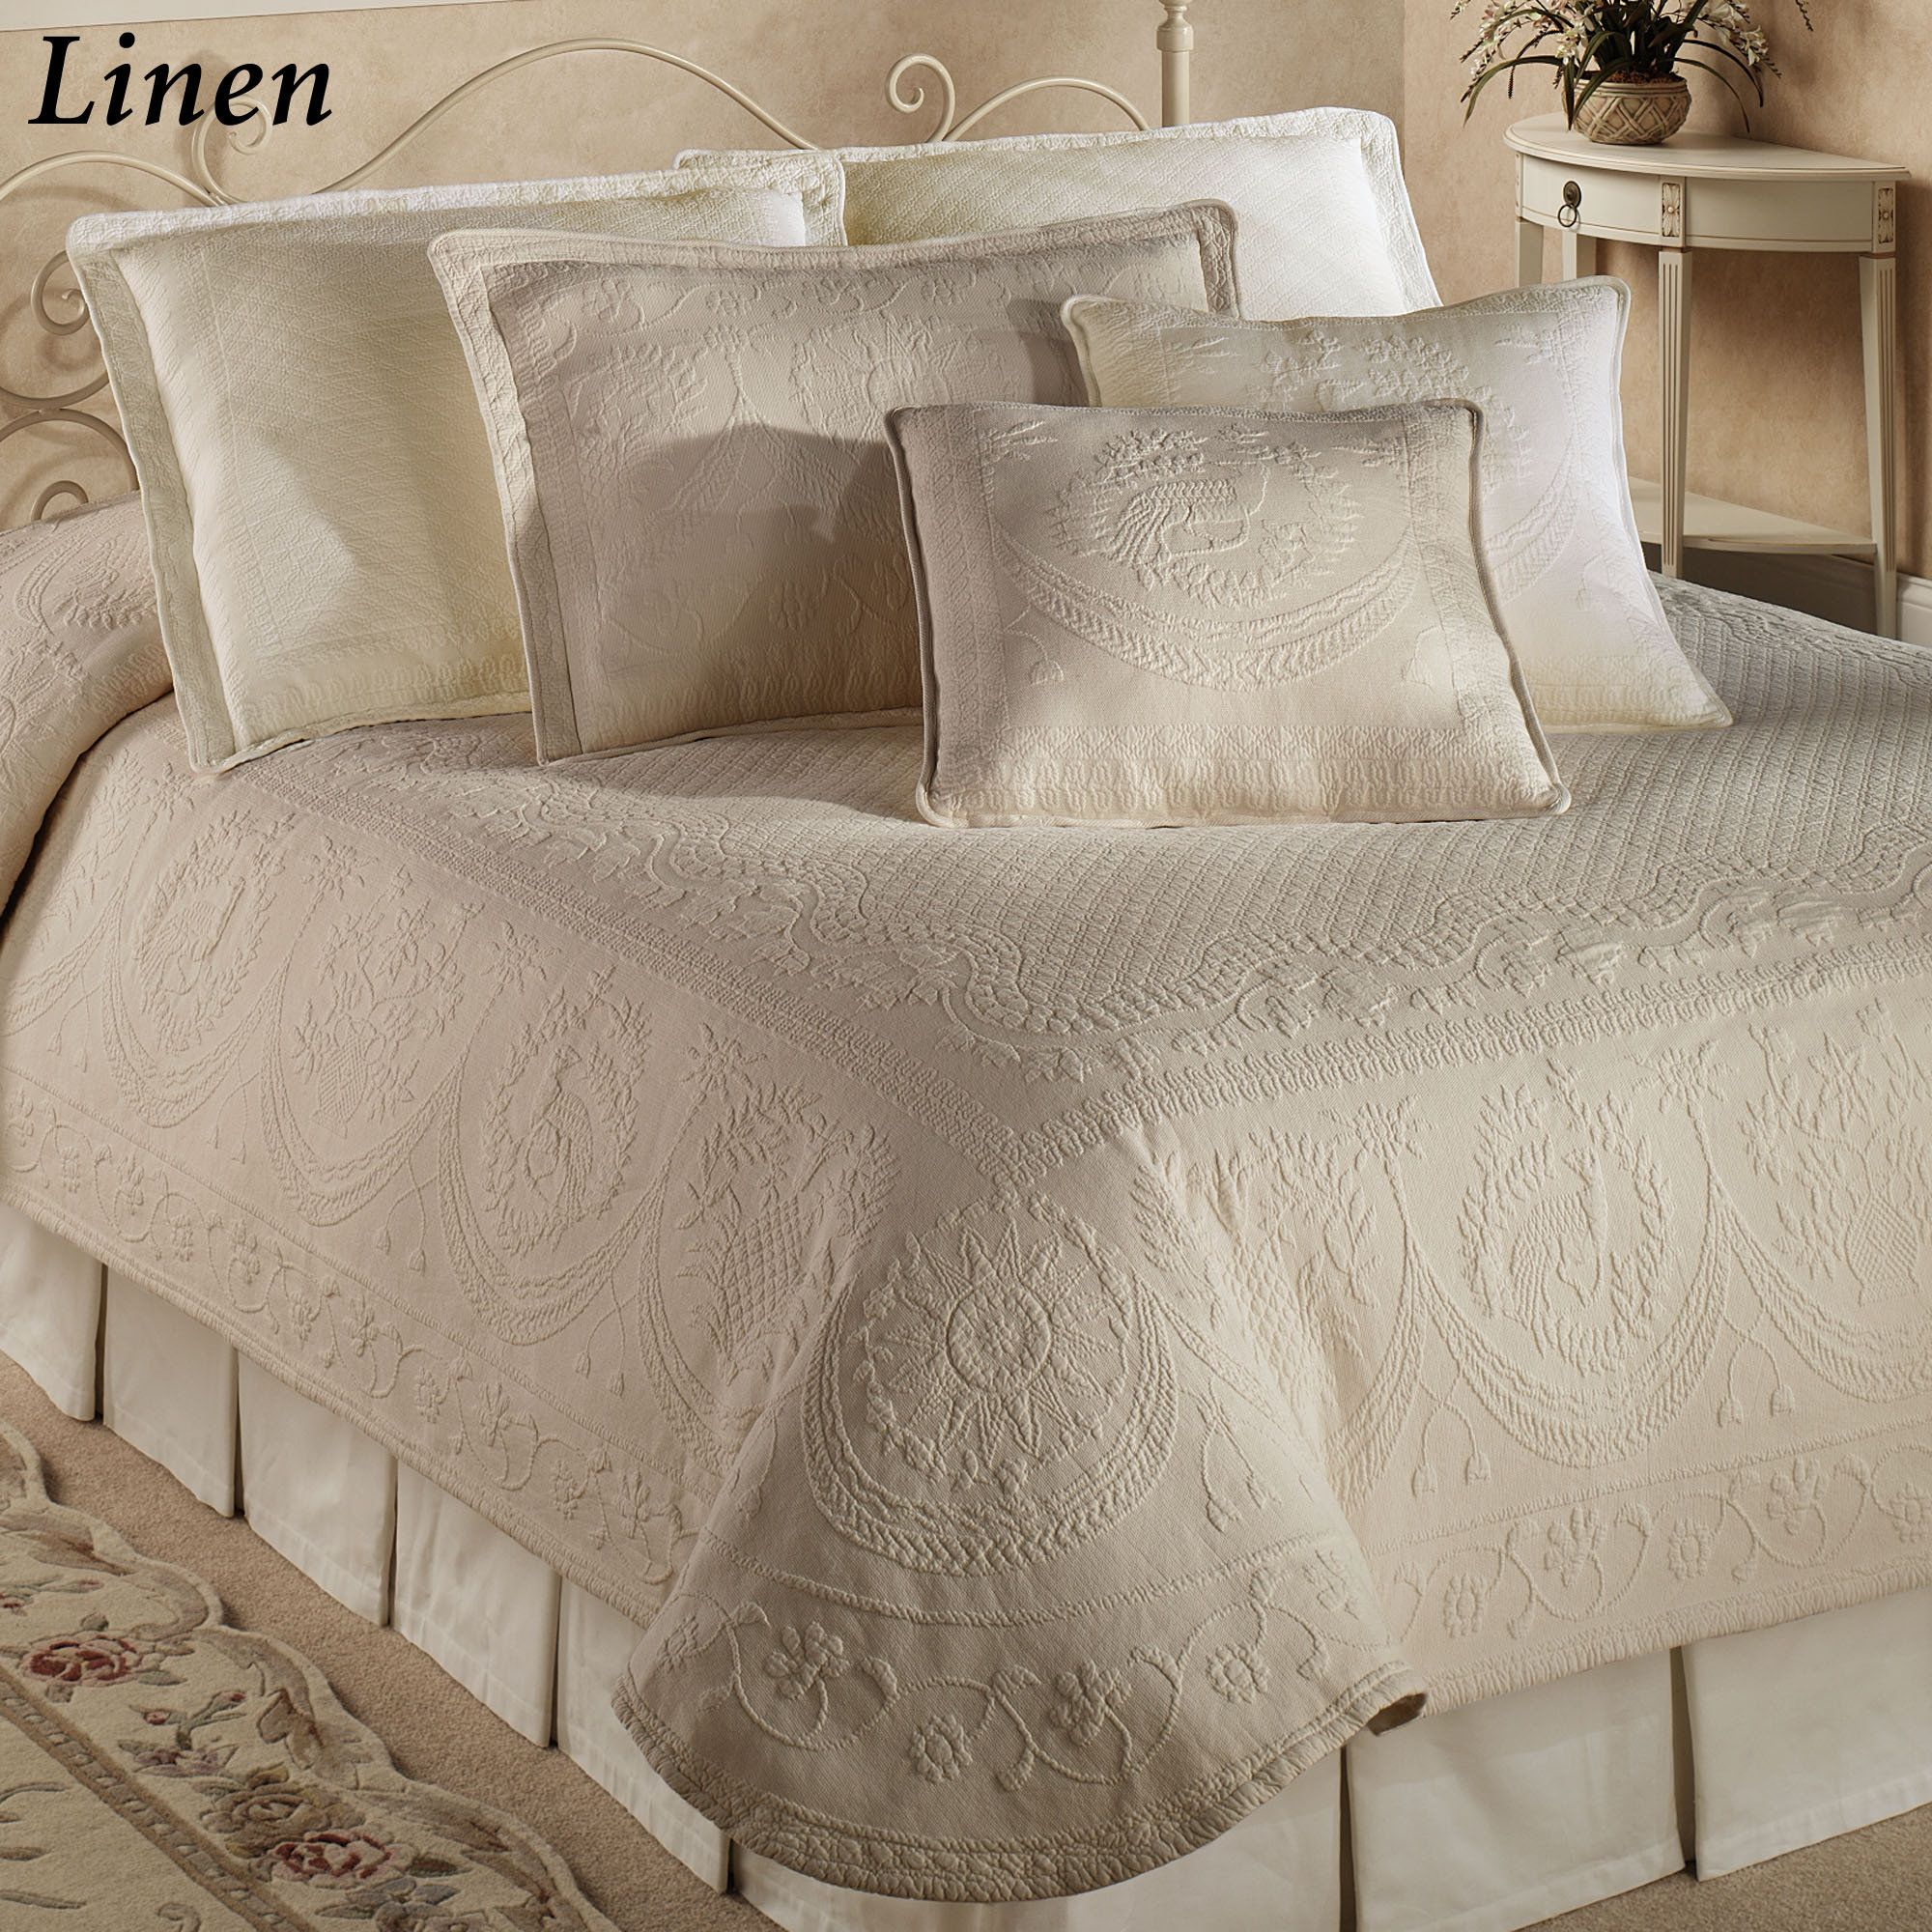 King Charles Matelasse Coverlet It Also Comes In Linen As The